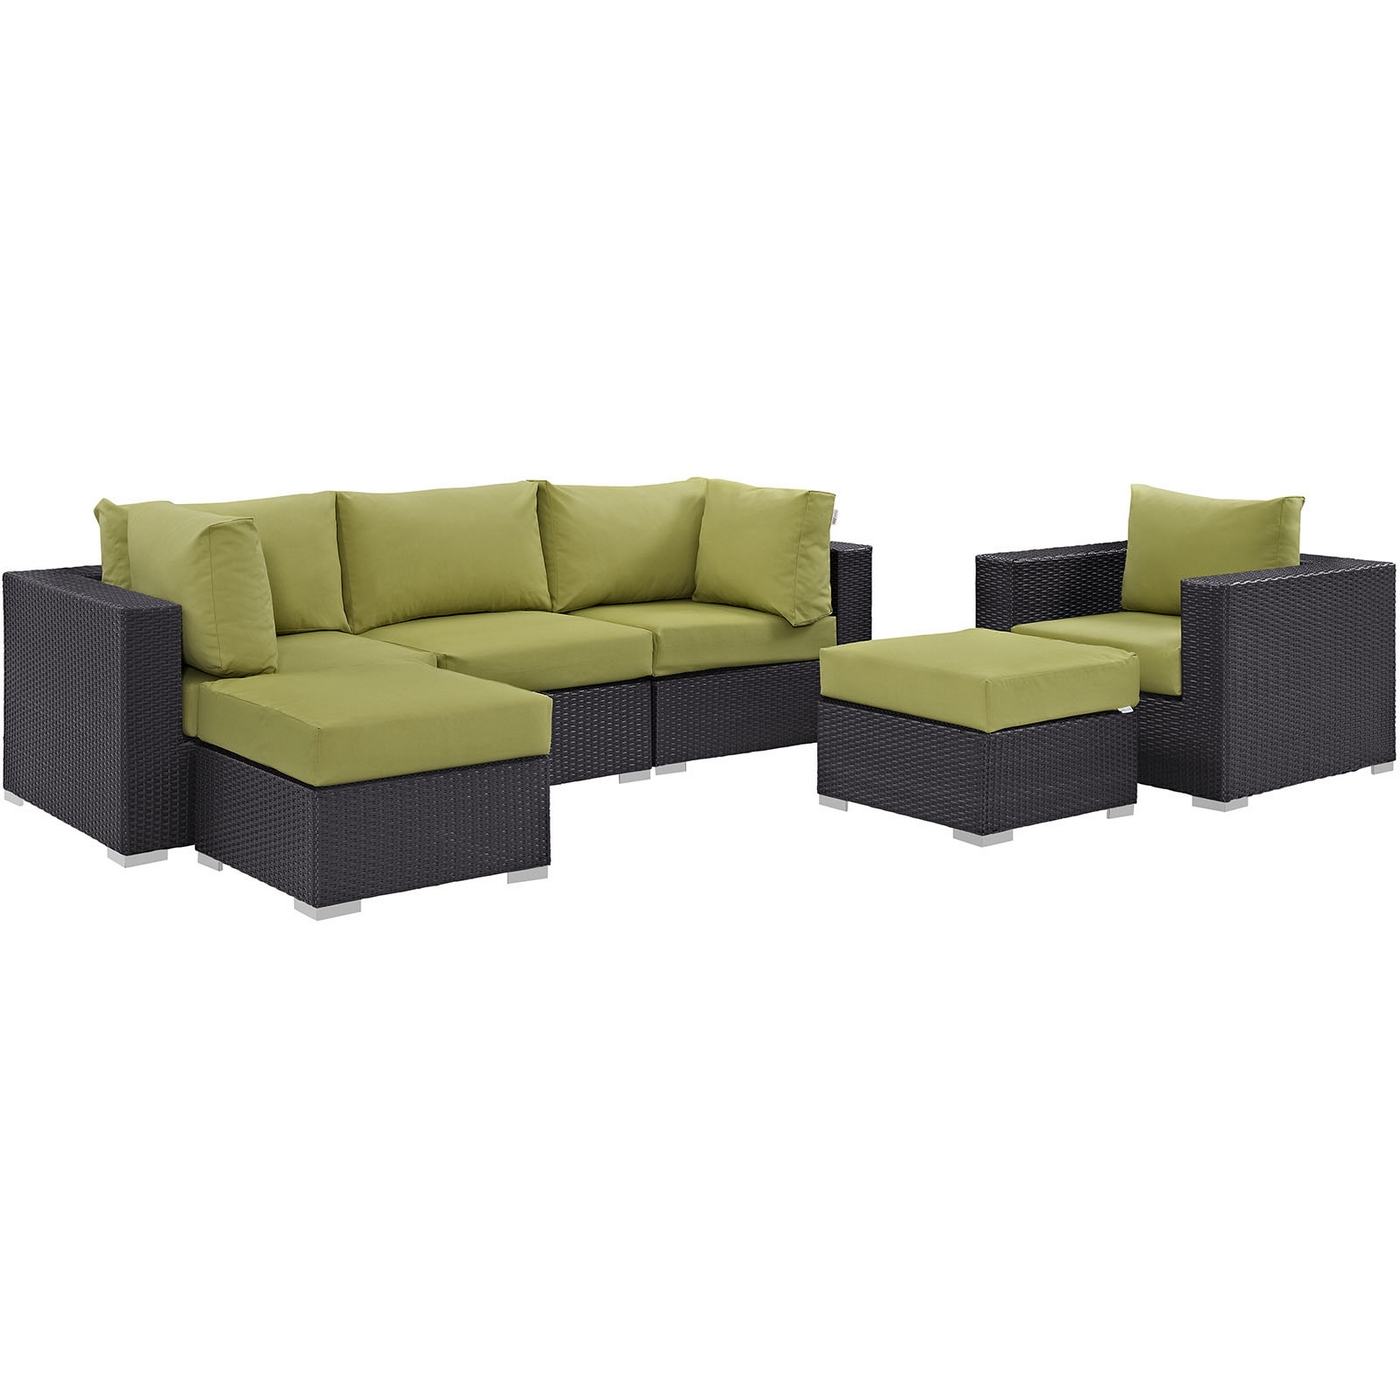 Fine Details About Convene Modern 6 Piece Outdoor Patio Rattan Sectional Sofa Set Dark Brown Green Inzonedesignstudio Interior Chair Design Inzonedesignstudiocom